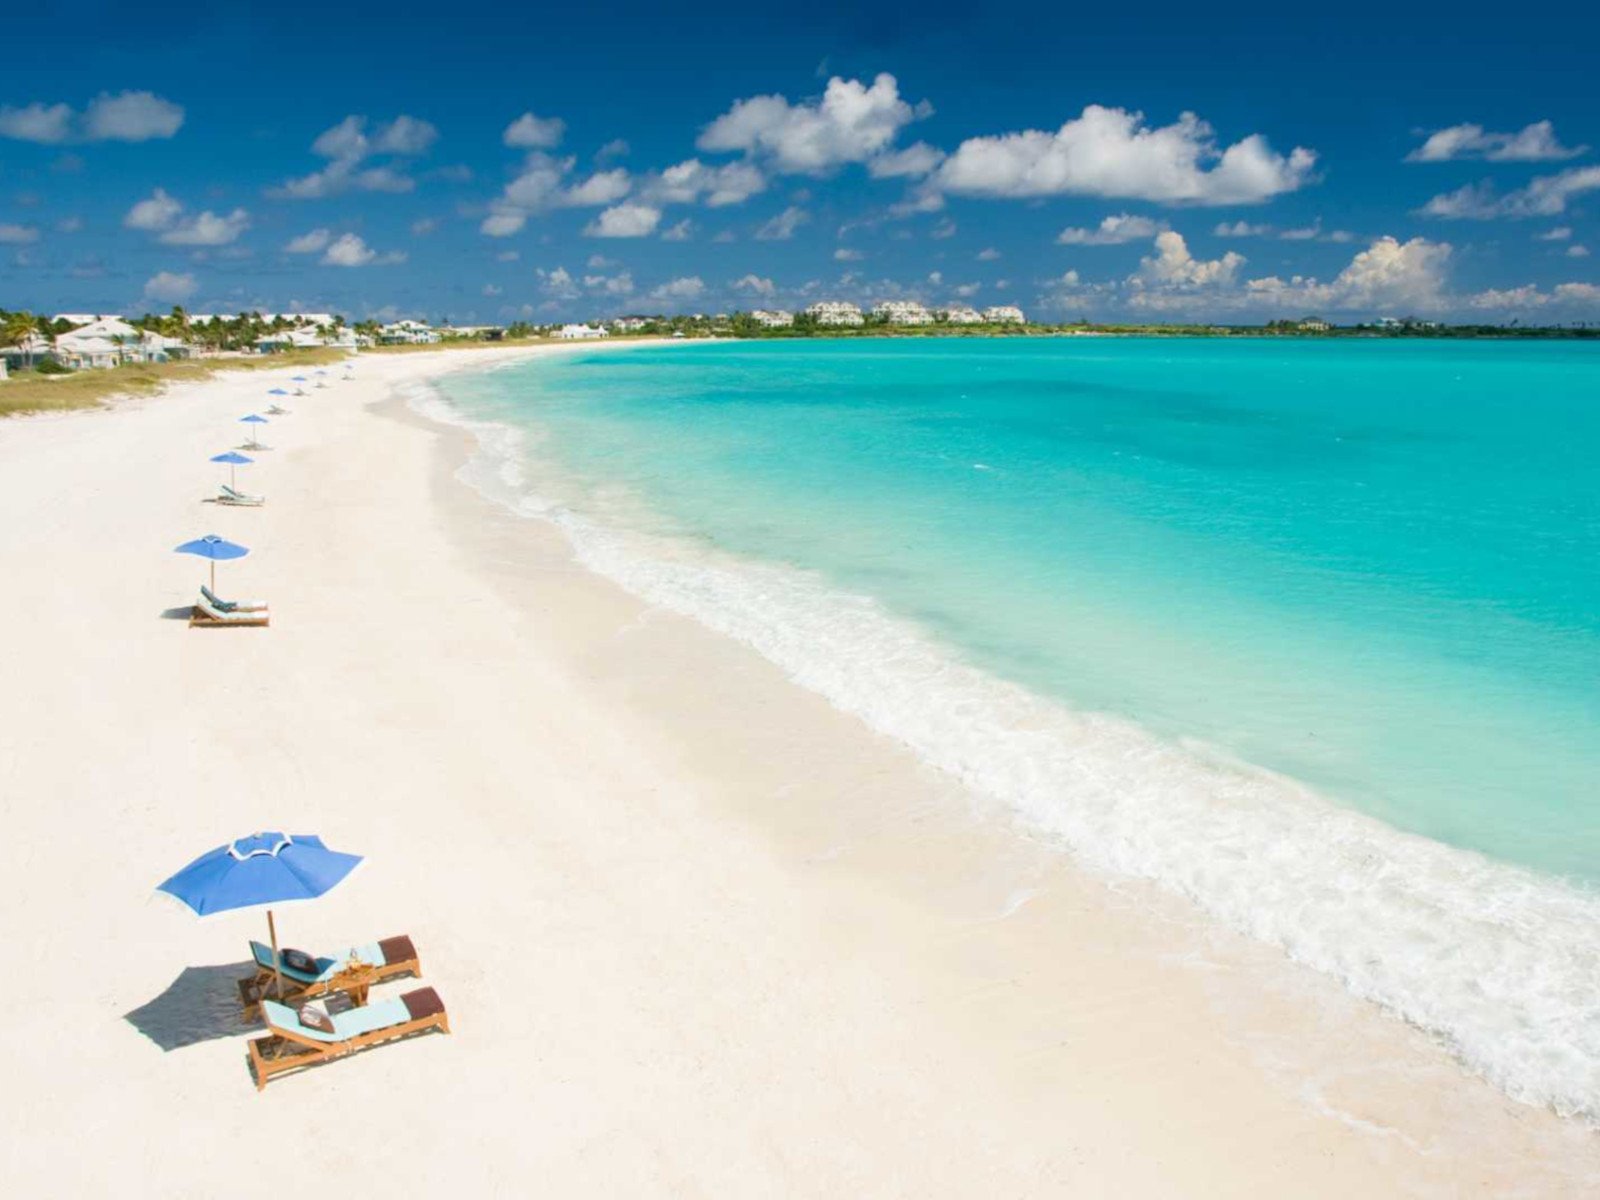 Sandal Emerald Bay Golf, Tennis and Spa Resort - one of the best tennis resorts for your tennis holidays in Bahamas